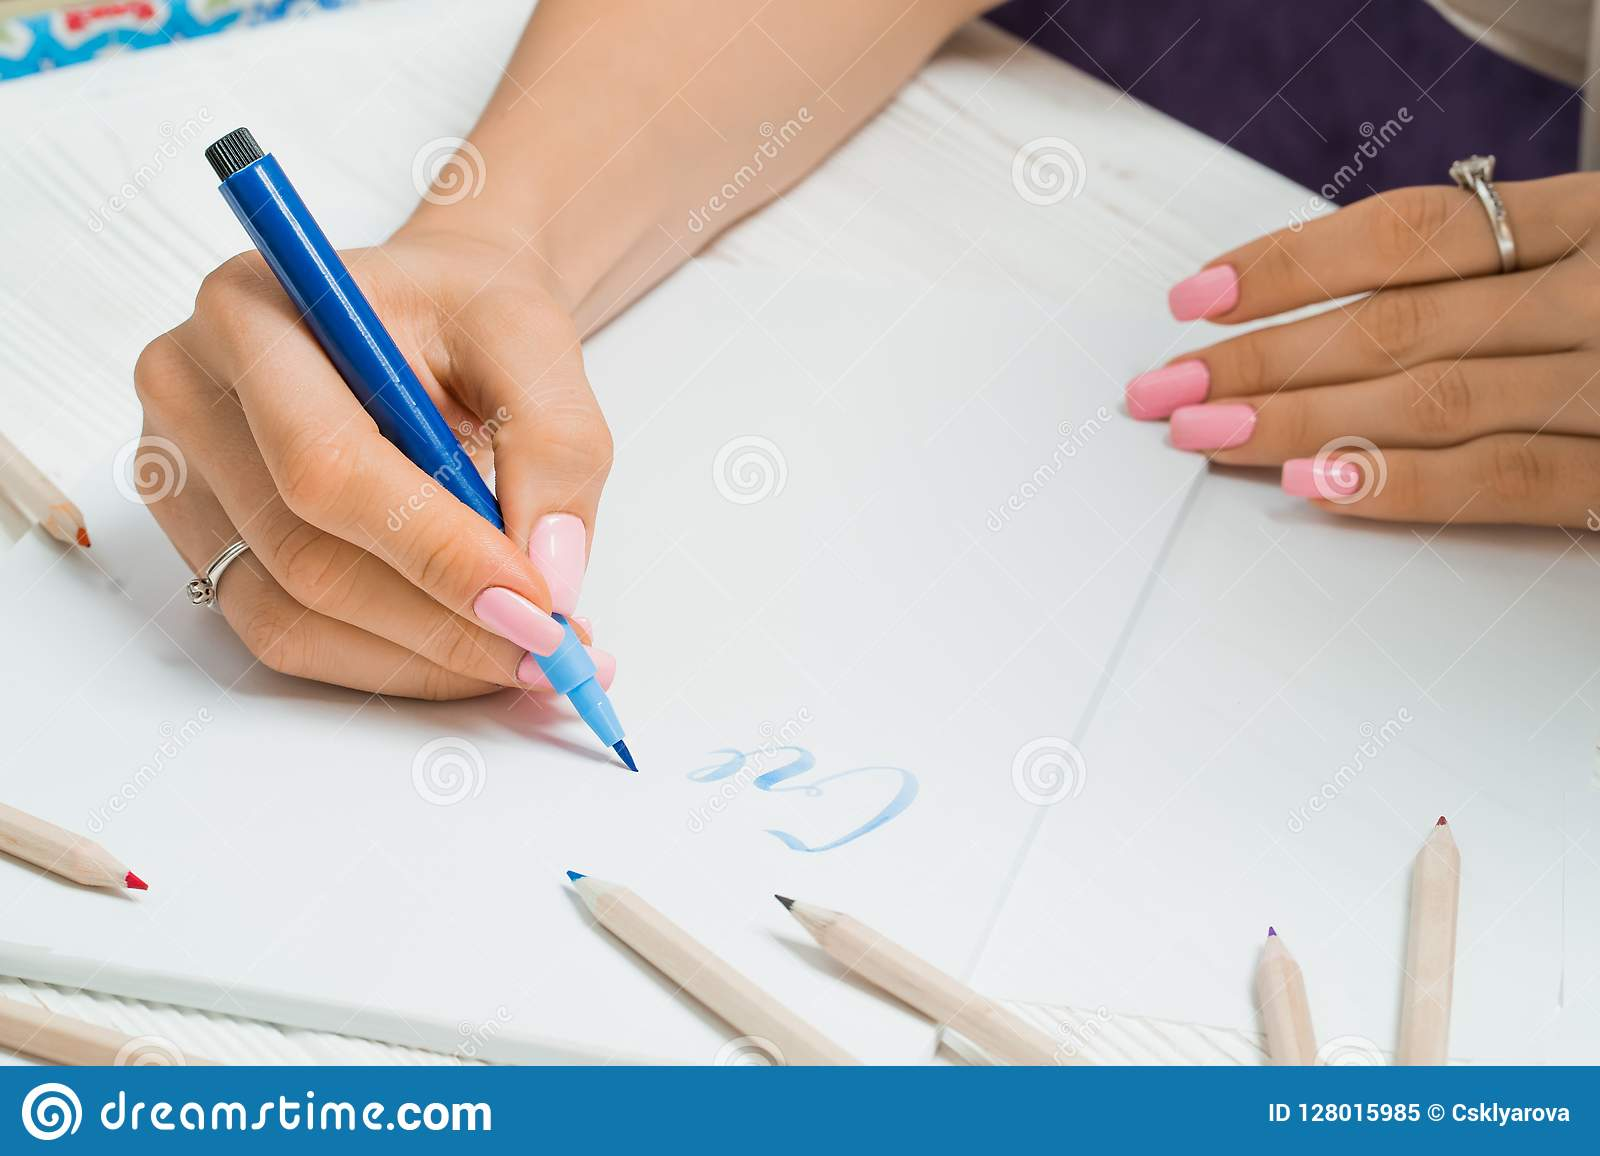 Create. Female hand writes beautiful blue letters on canvas in colorful pens frame. Calligraphy script. Art of writing